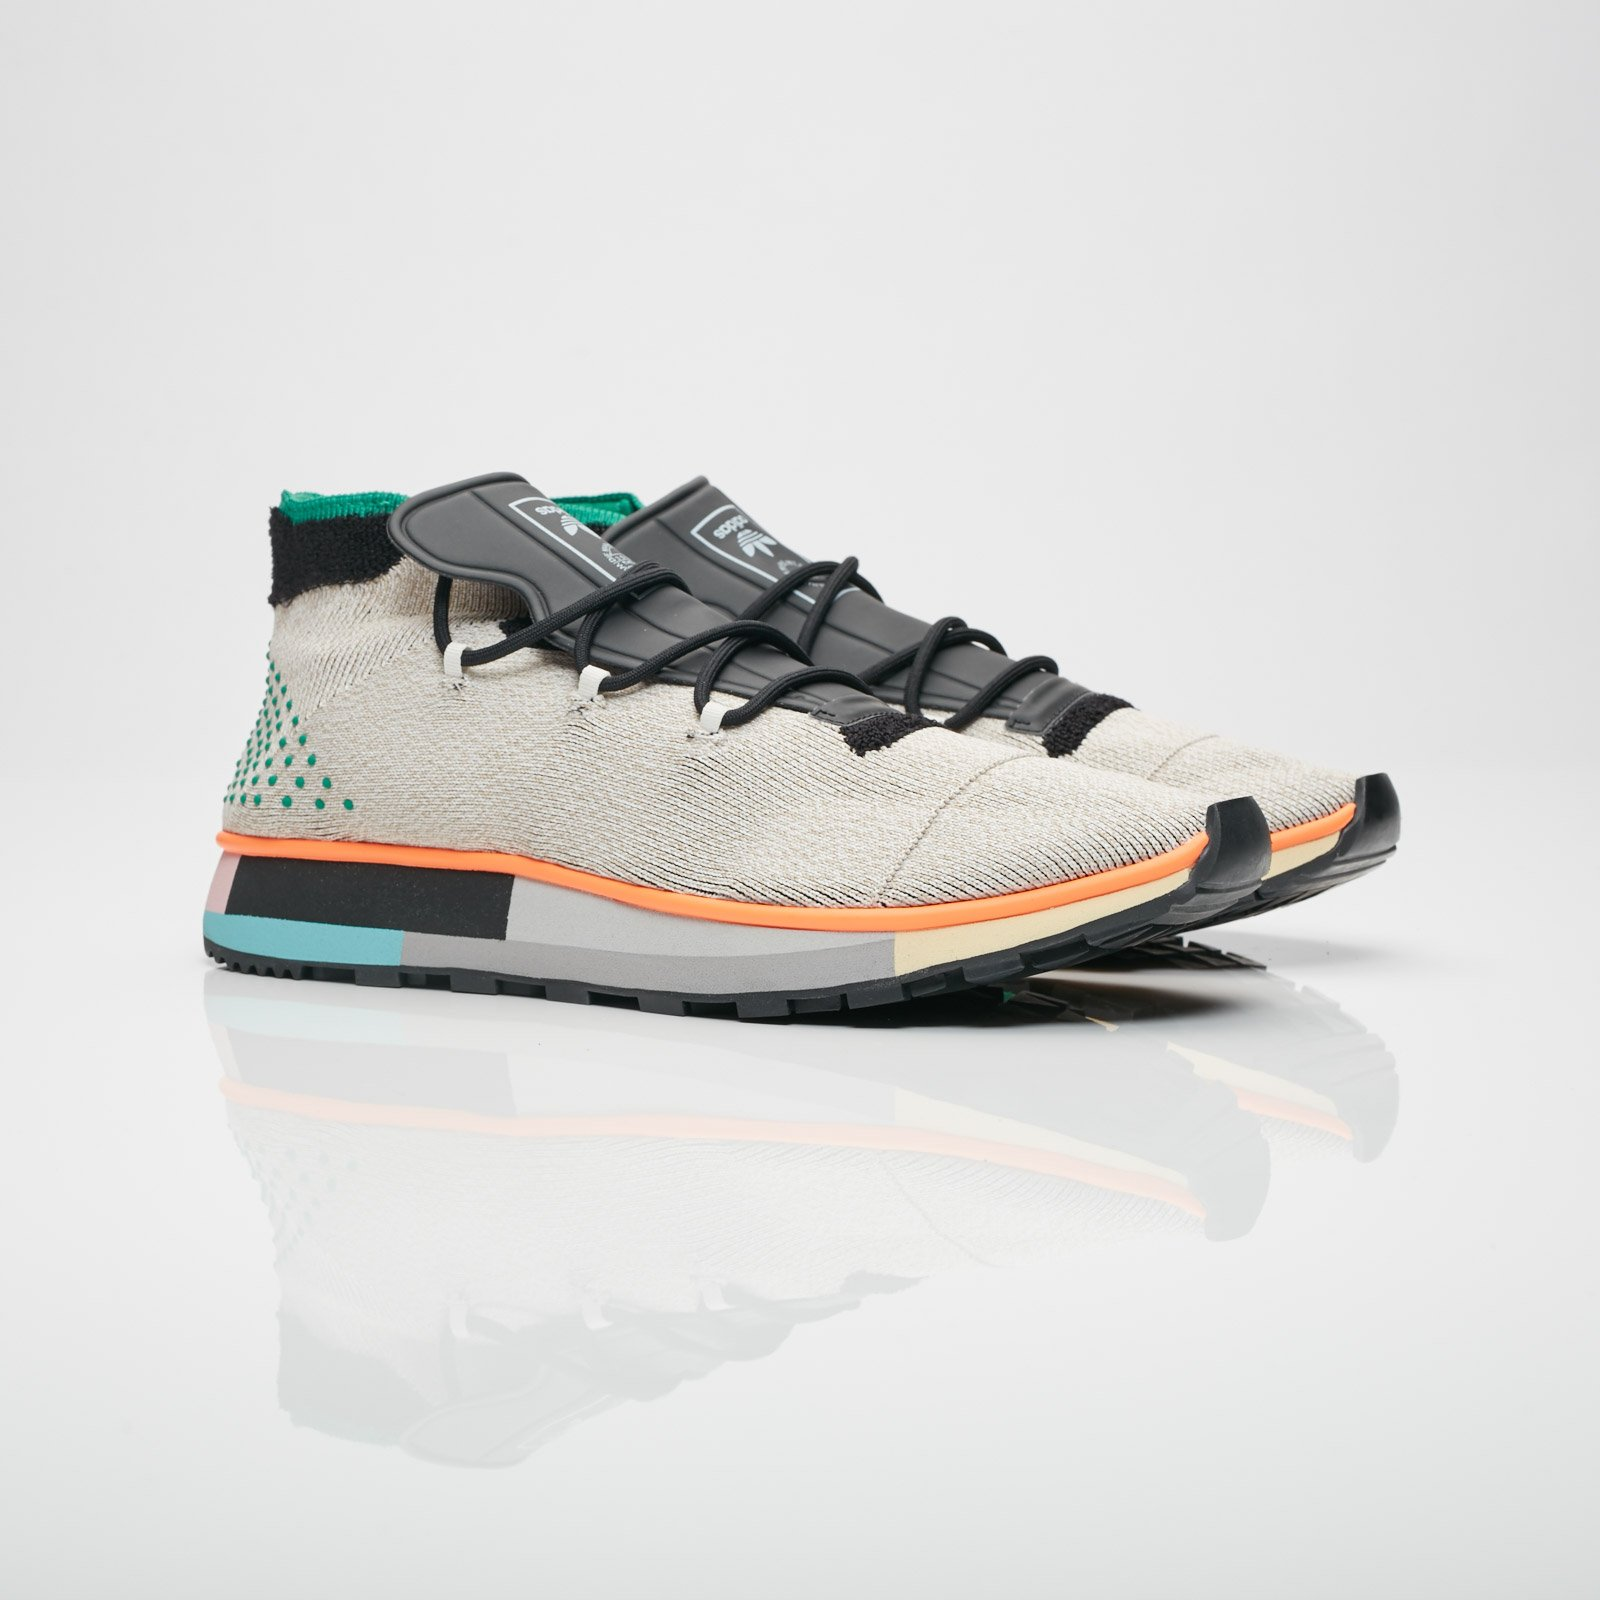 adidas Running Shoes Ac6845 Sneakersnstuff I Sneakers